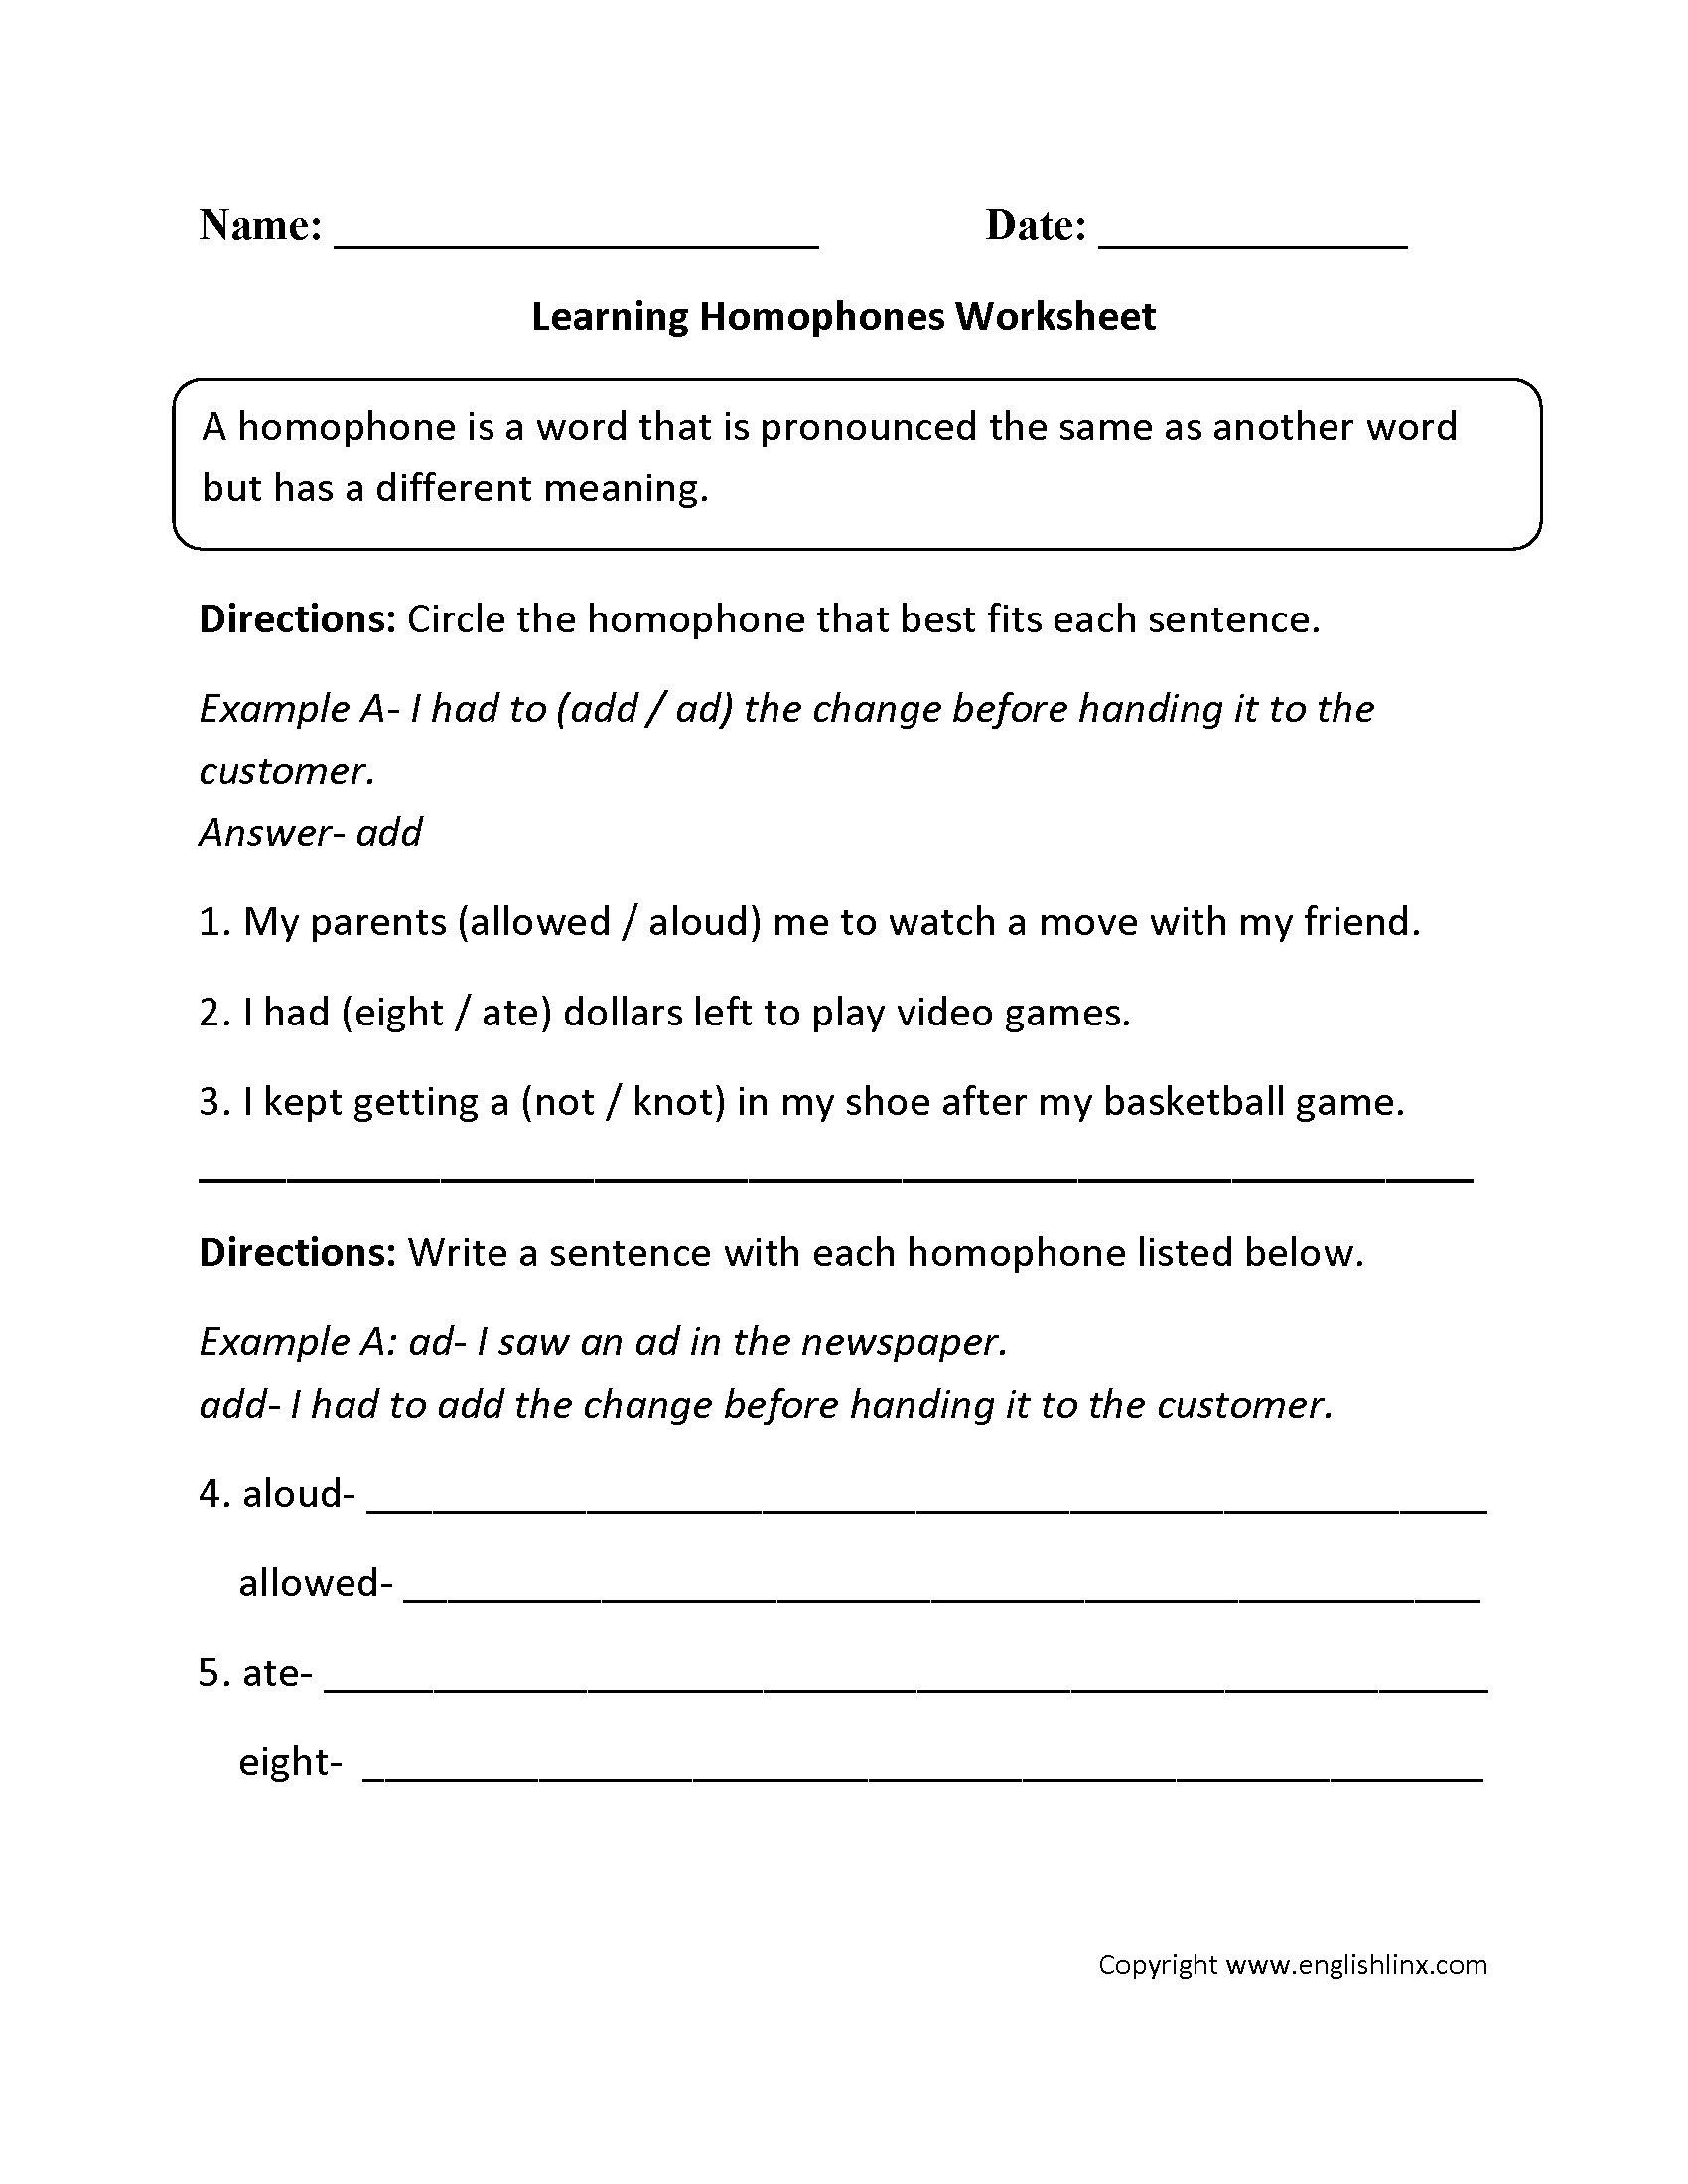 Worksheets Homophone Worksheets vocabulary worksheets homophone intermediate worksheets